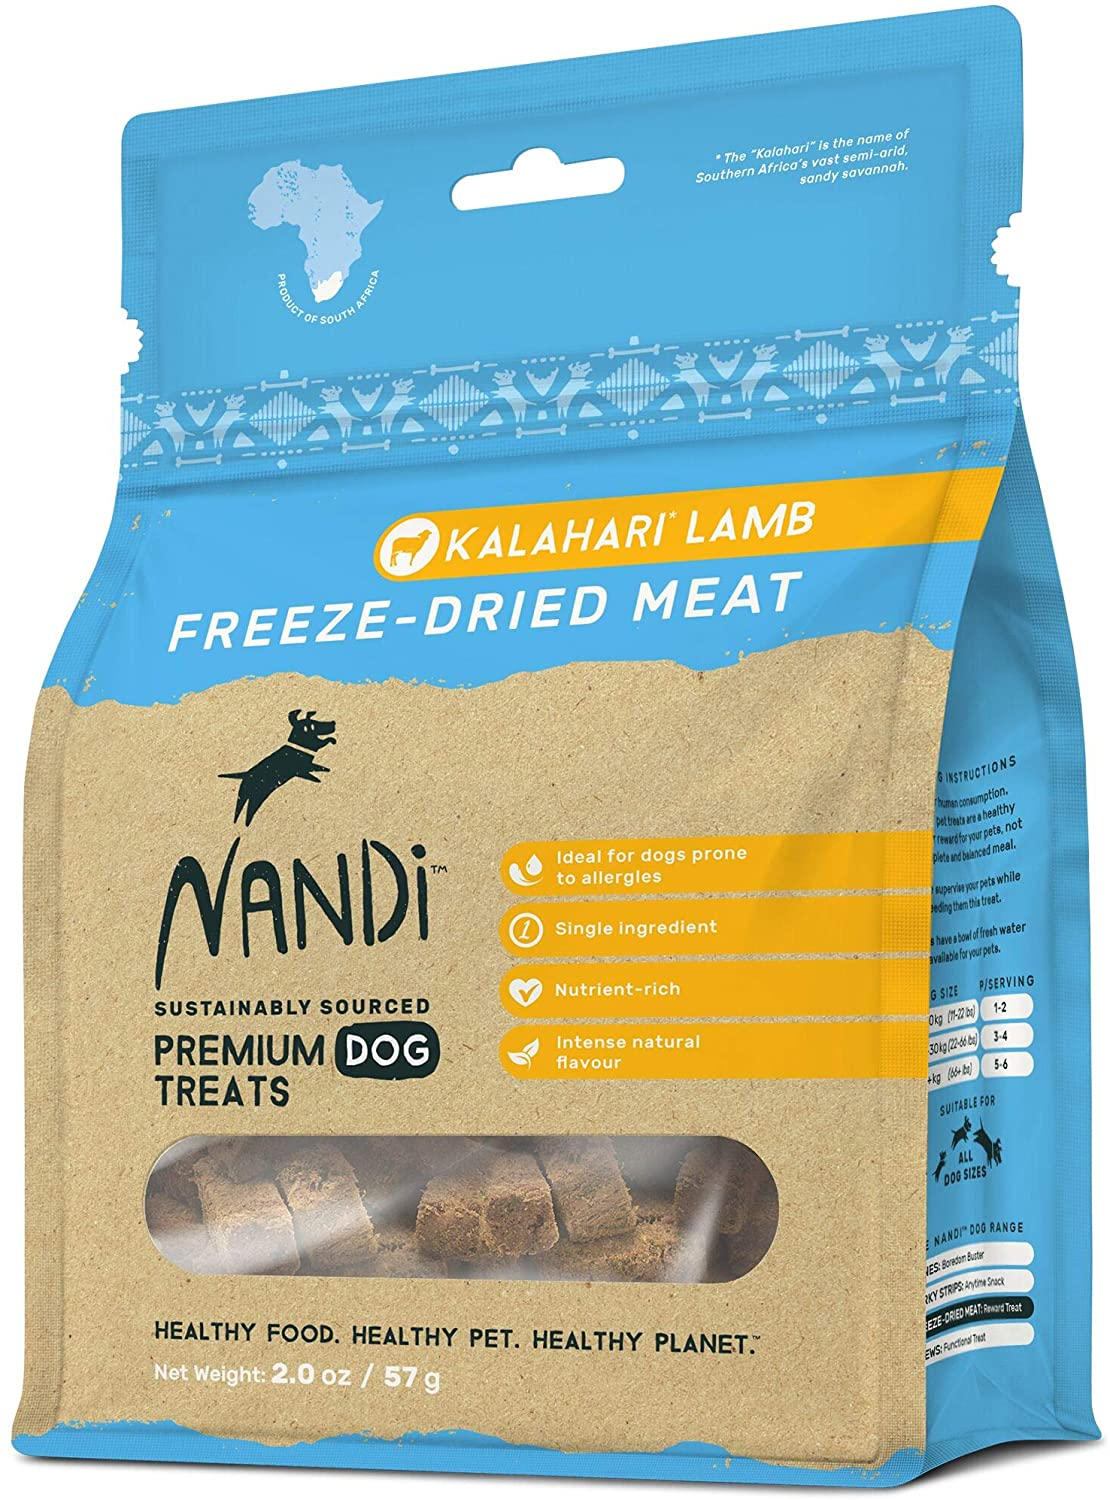 Nandi All-Natural South African Freeze-Dried Dog Treats, 2.0 oz | Single Ingredient, 100 Percent Premium Organ Meat, Grain Free, Sustainably Sourced, Nutrient Rich